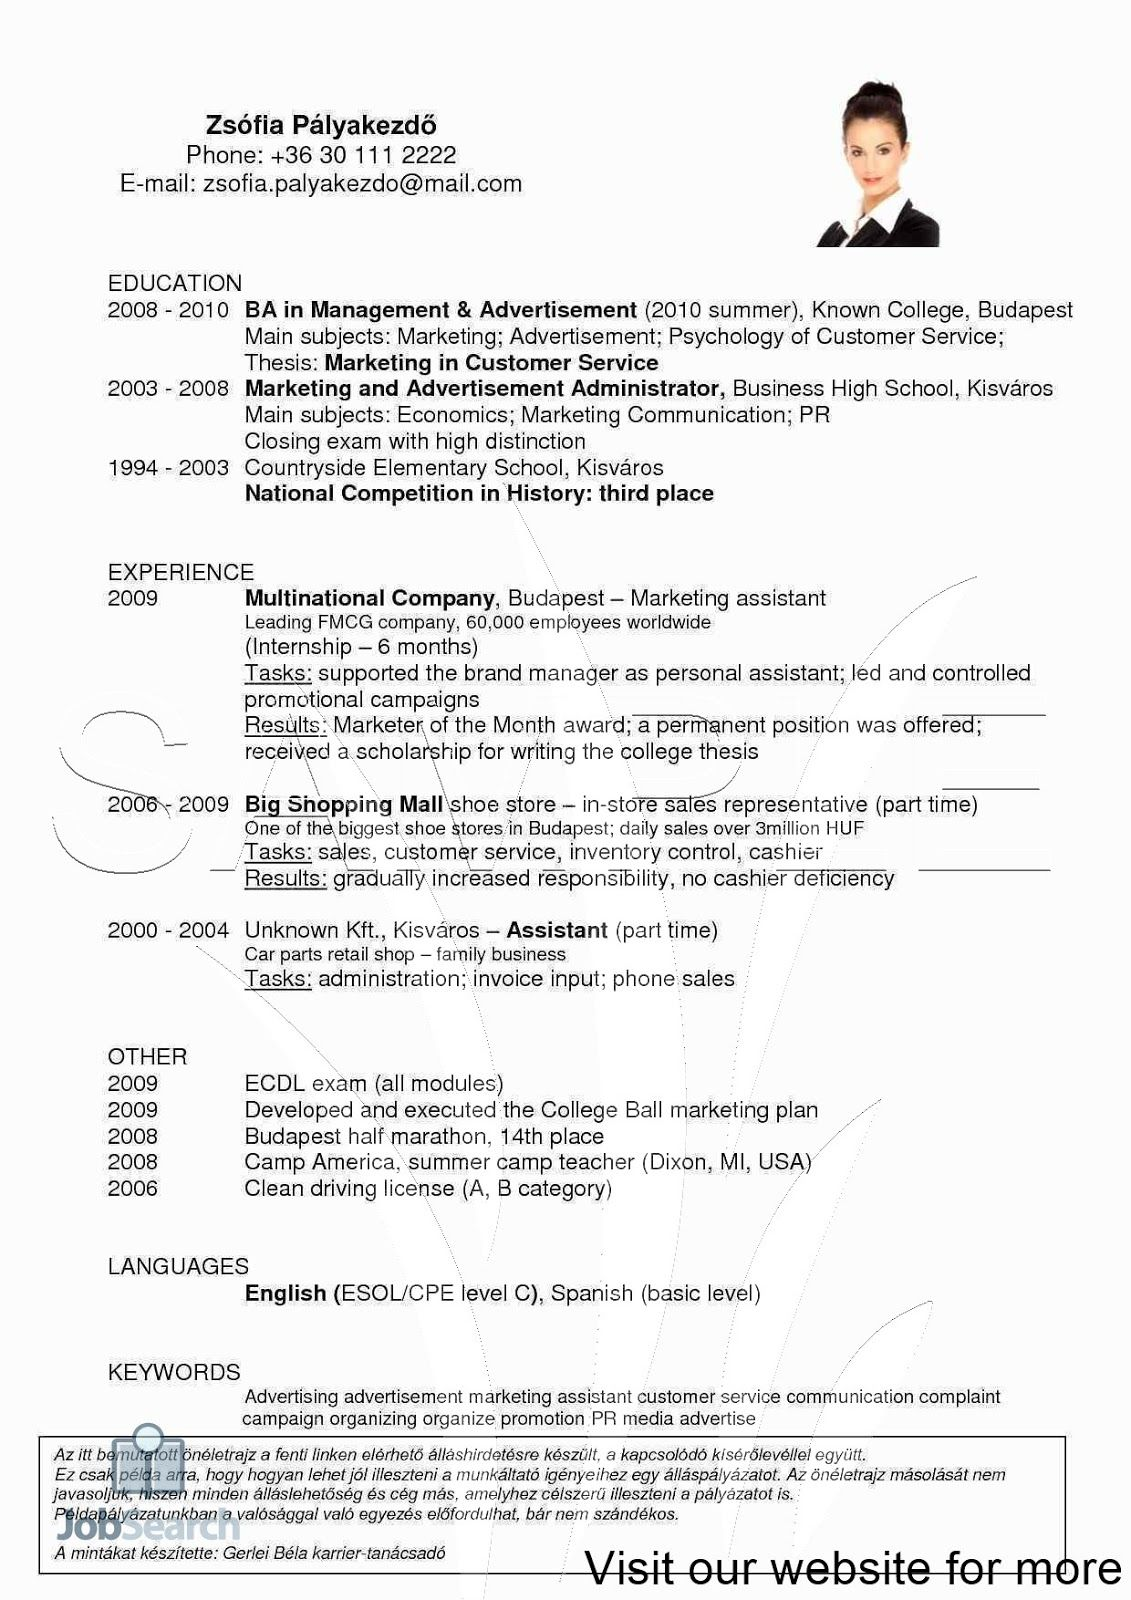 resume template writing free design objective examples keywords for clerical current Resume Keywords For Clerical Resume